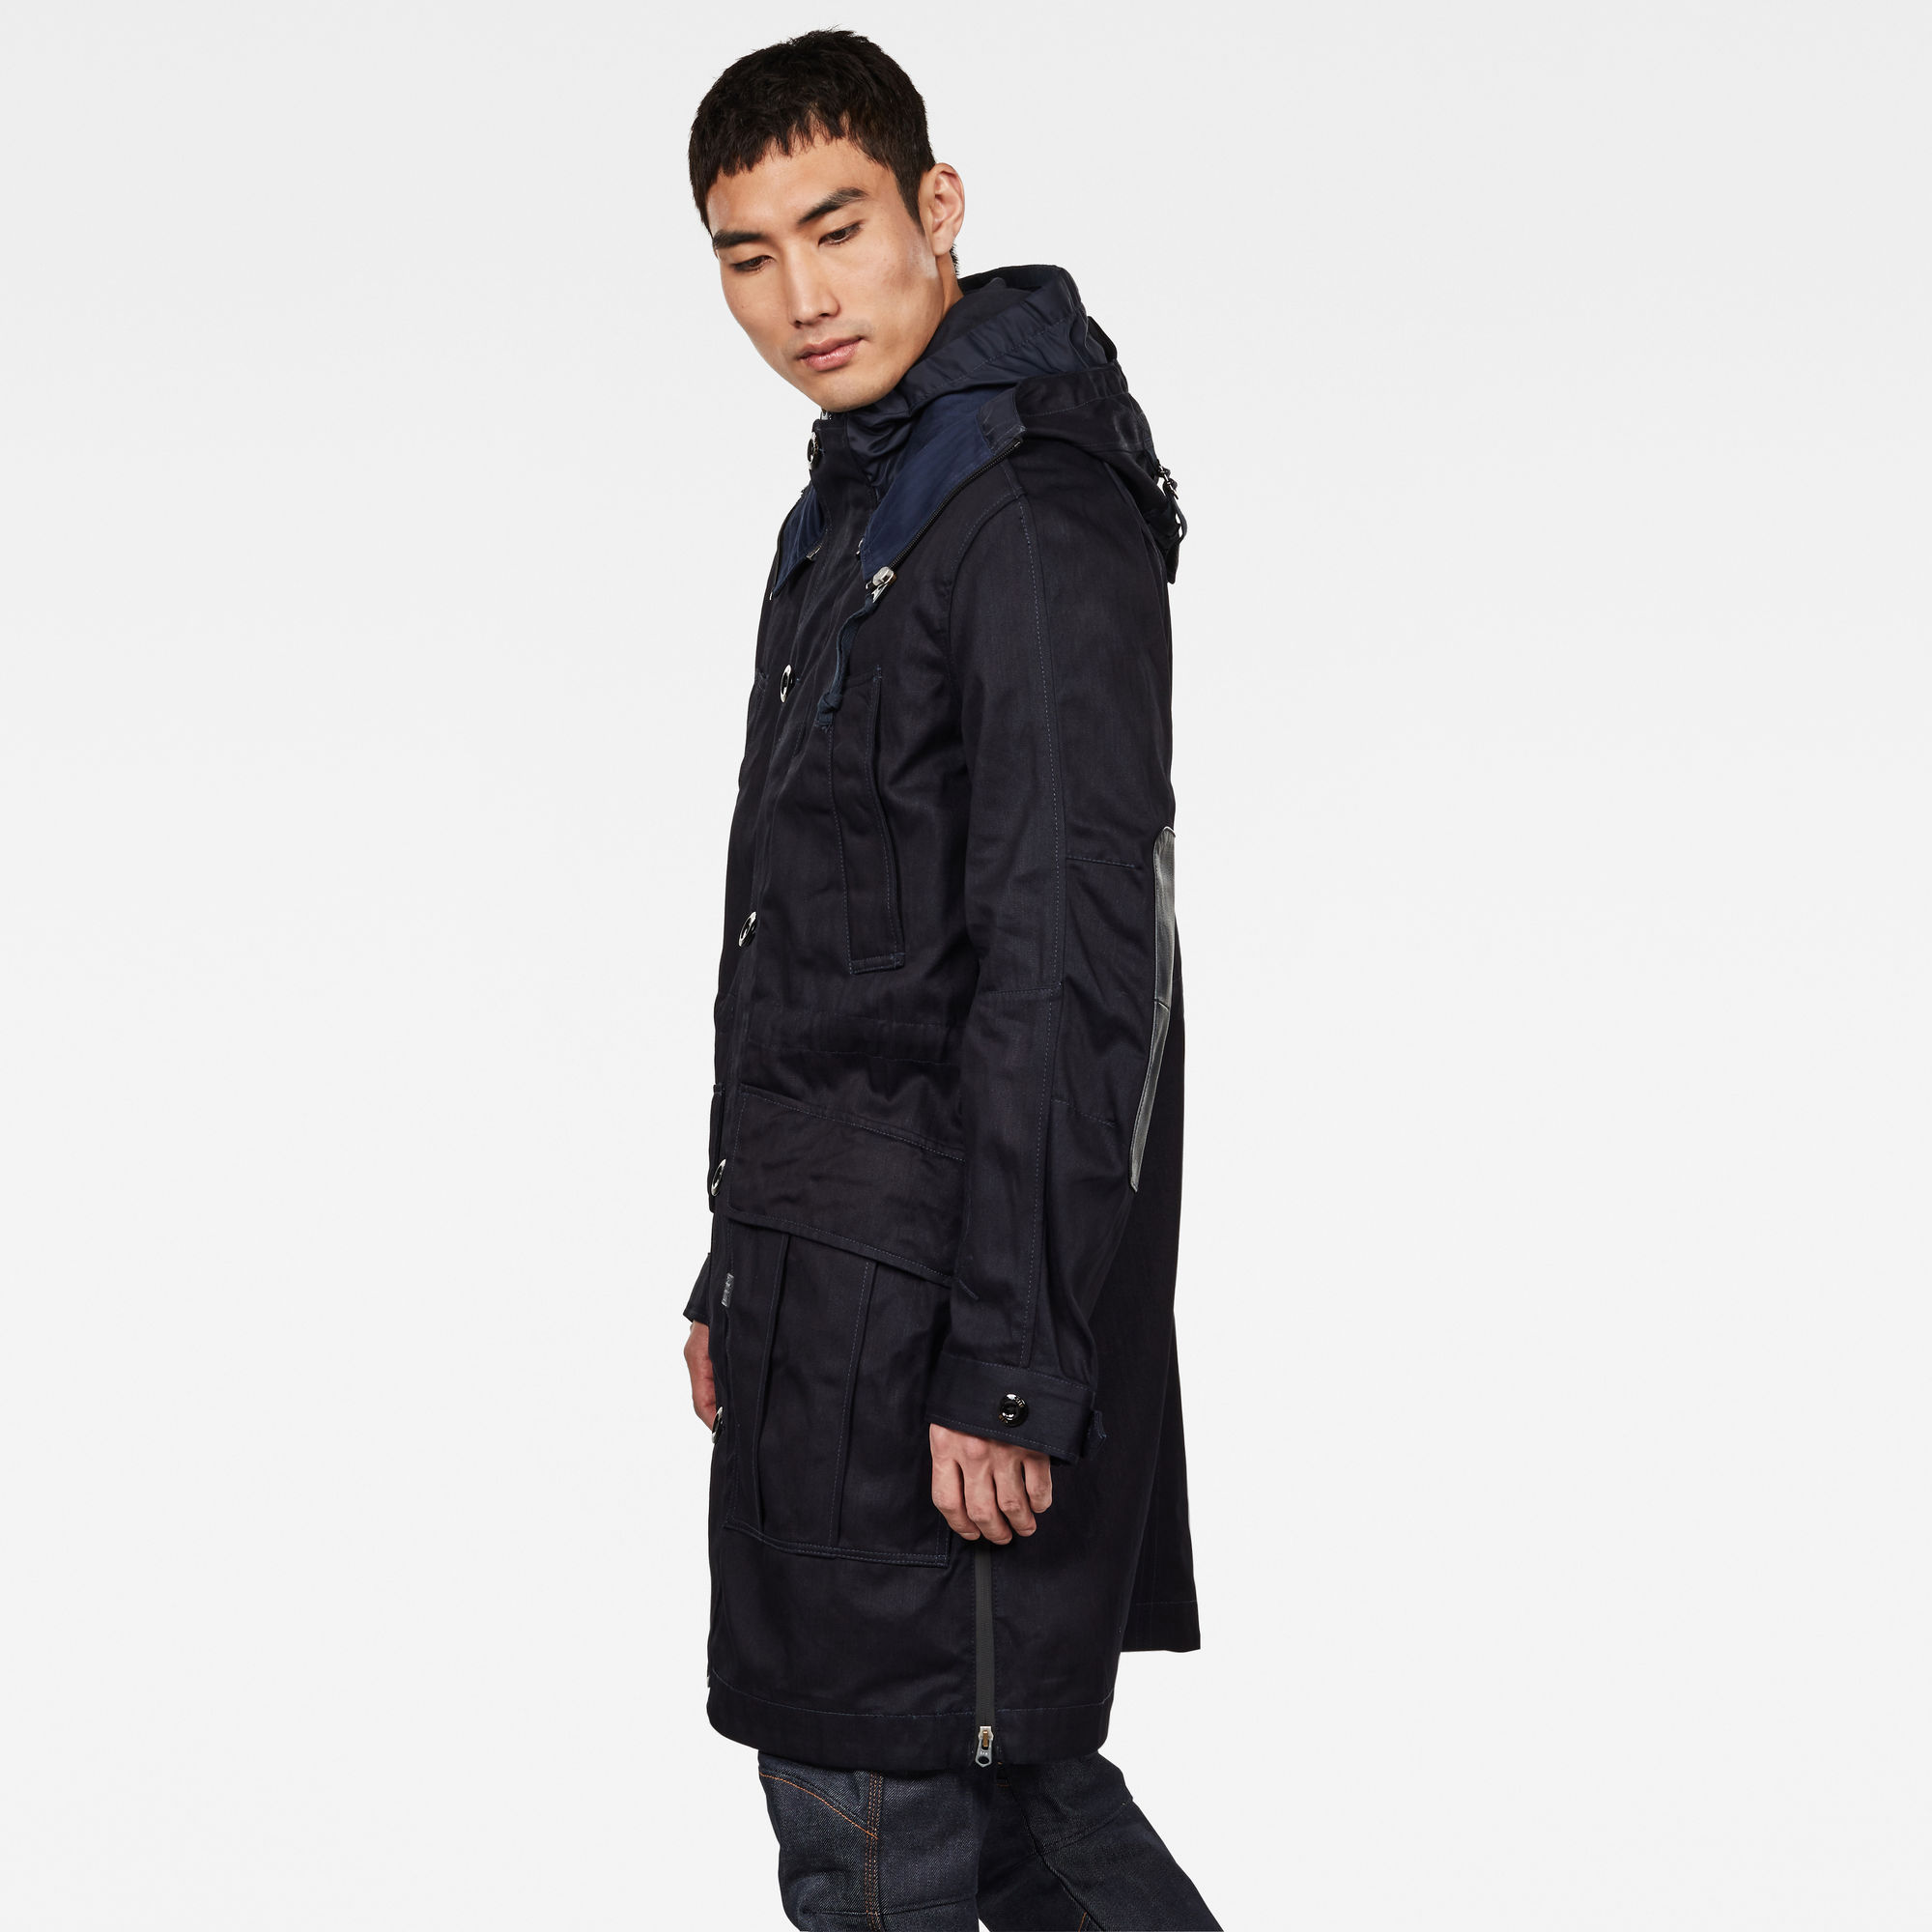 30 Years New York RAW Parka